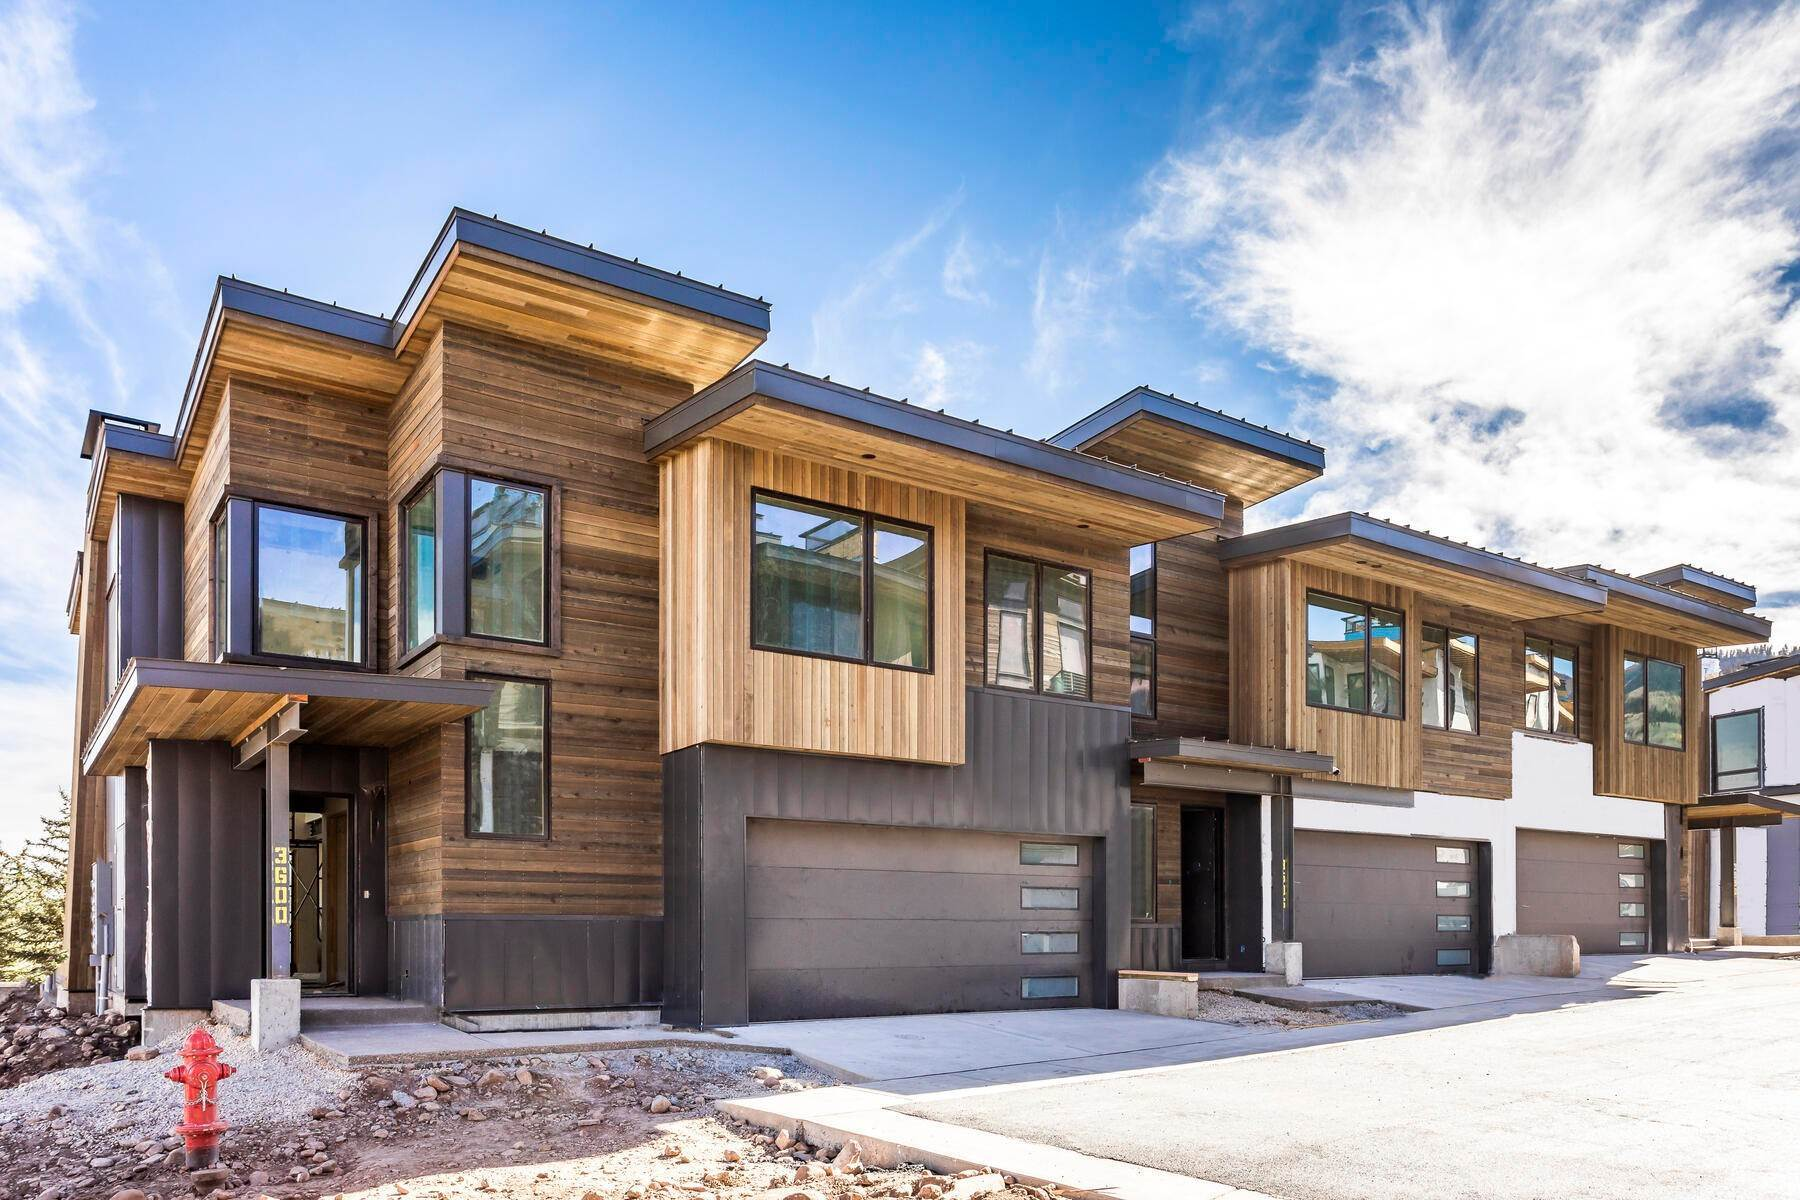 17. townhouses for Sale at Ski-In Townhomes in Canyons Village 3532 Ridgeline Drive Park City, Utah 84098 United States